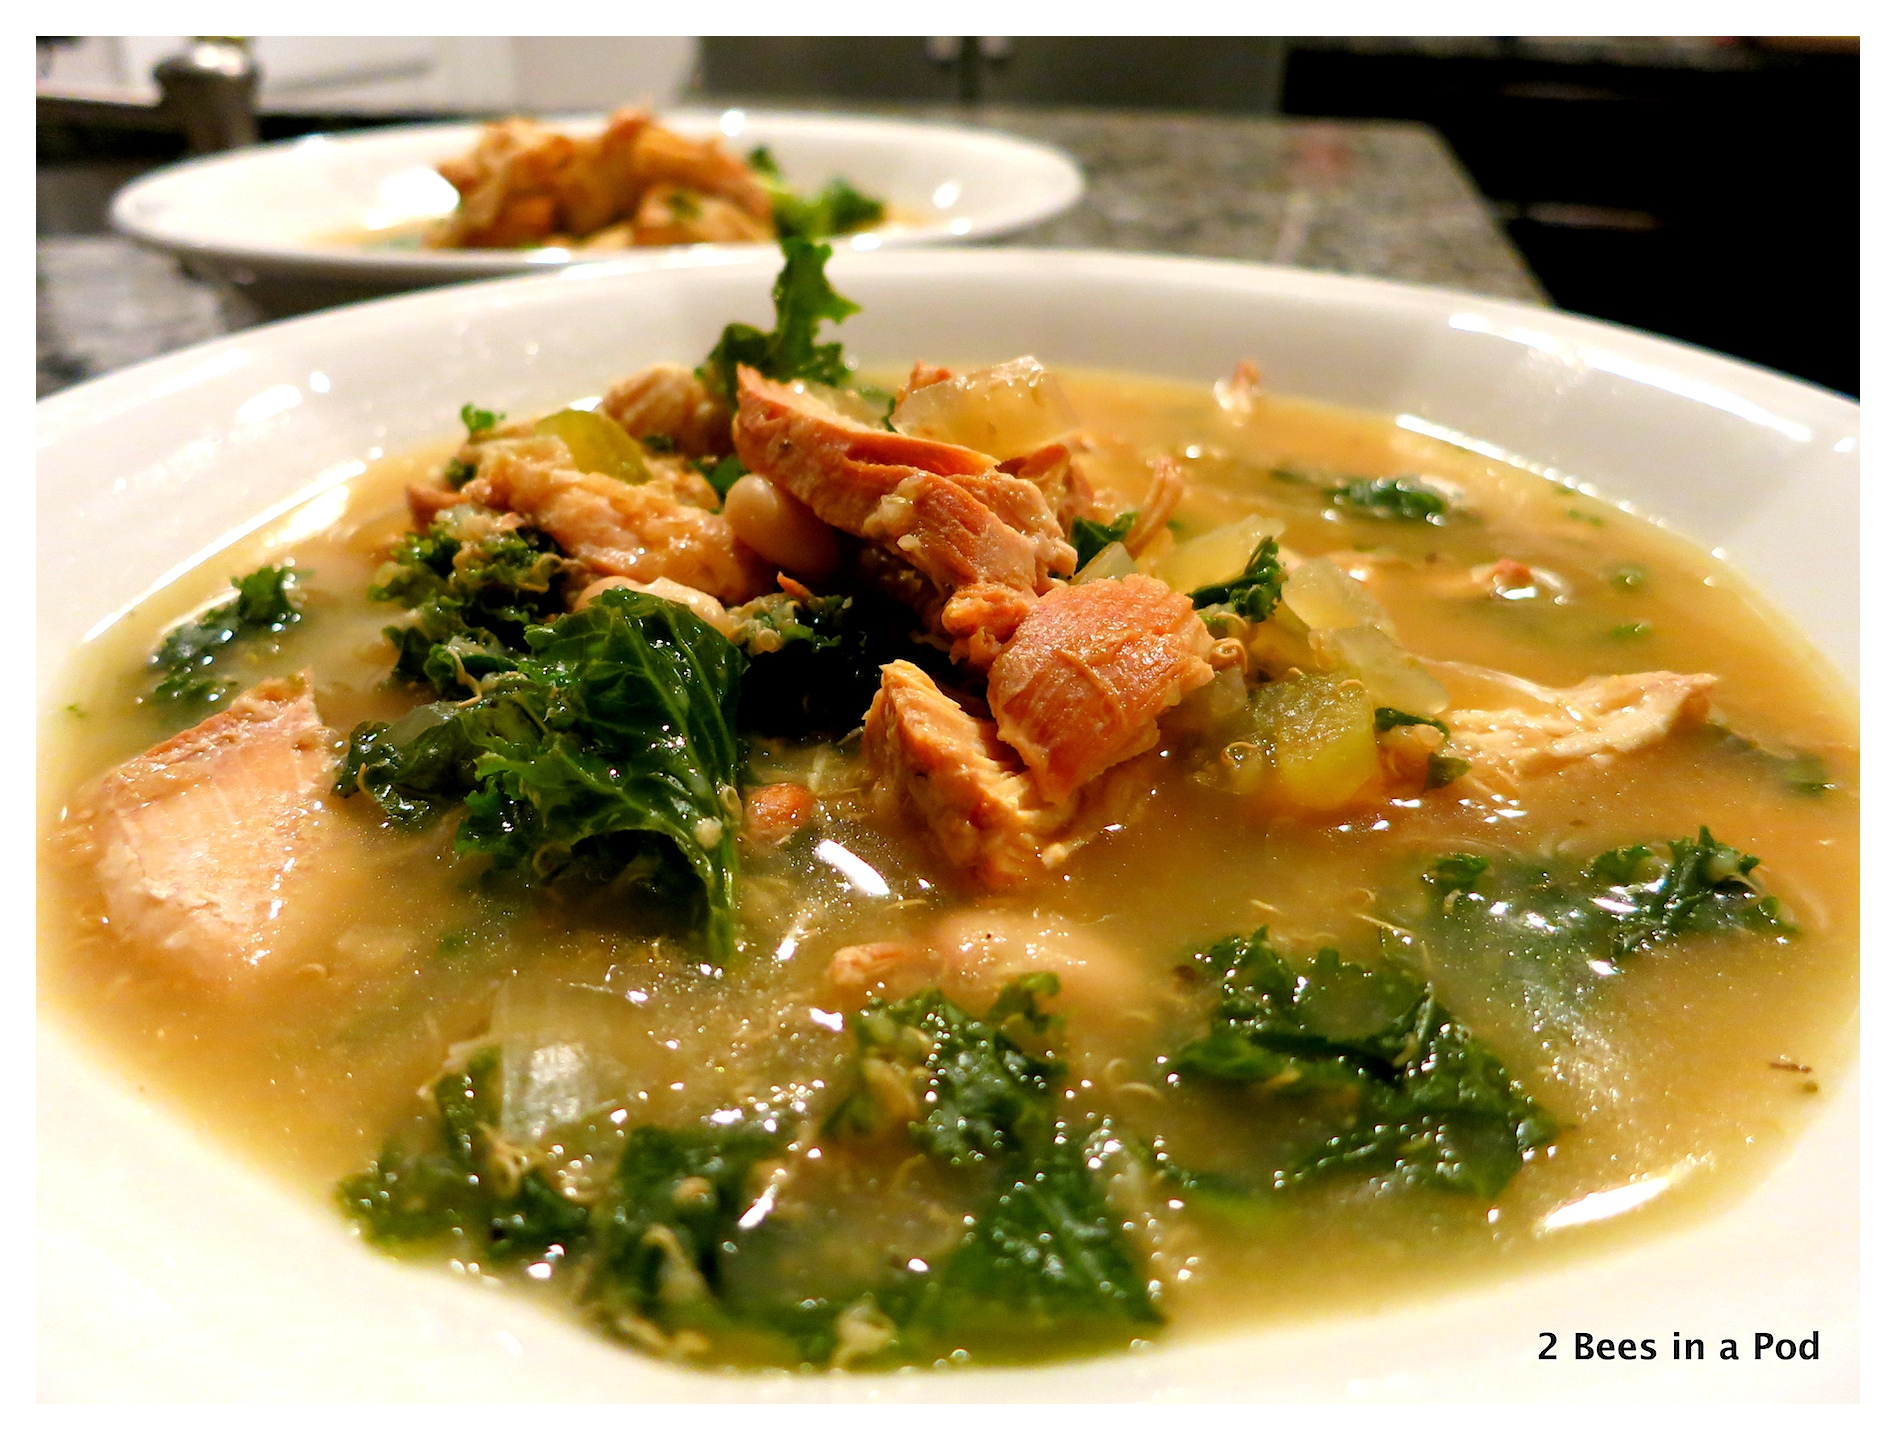 Slow Cooker Chicken, Quinoa and Kale Soup - Warmy, delicious and healthy - perfect Fall and Winter soup!